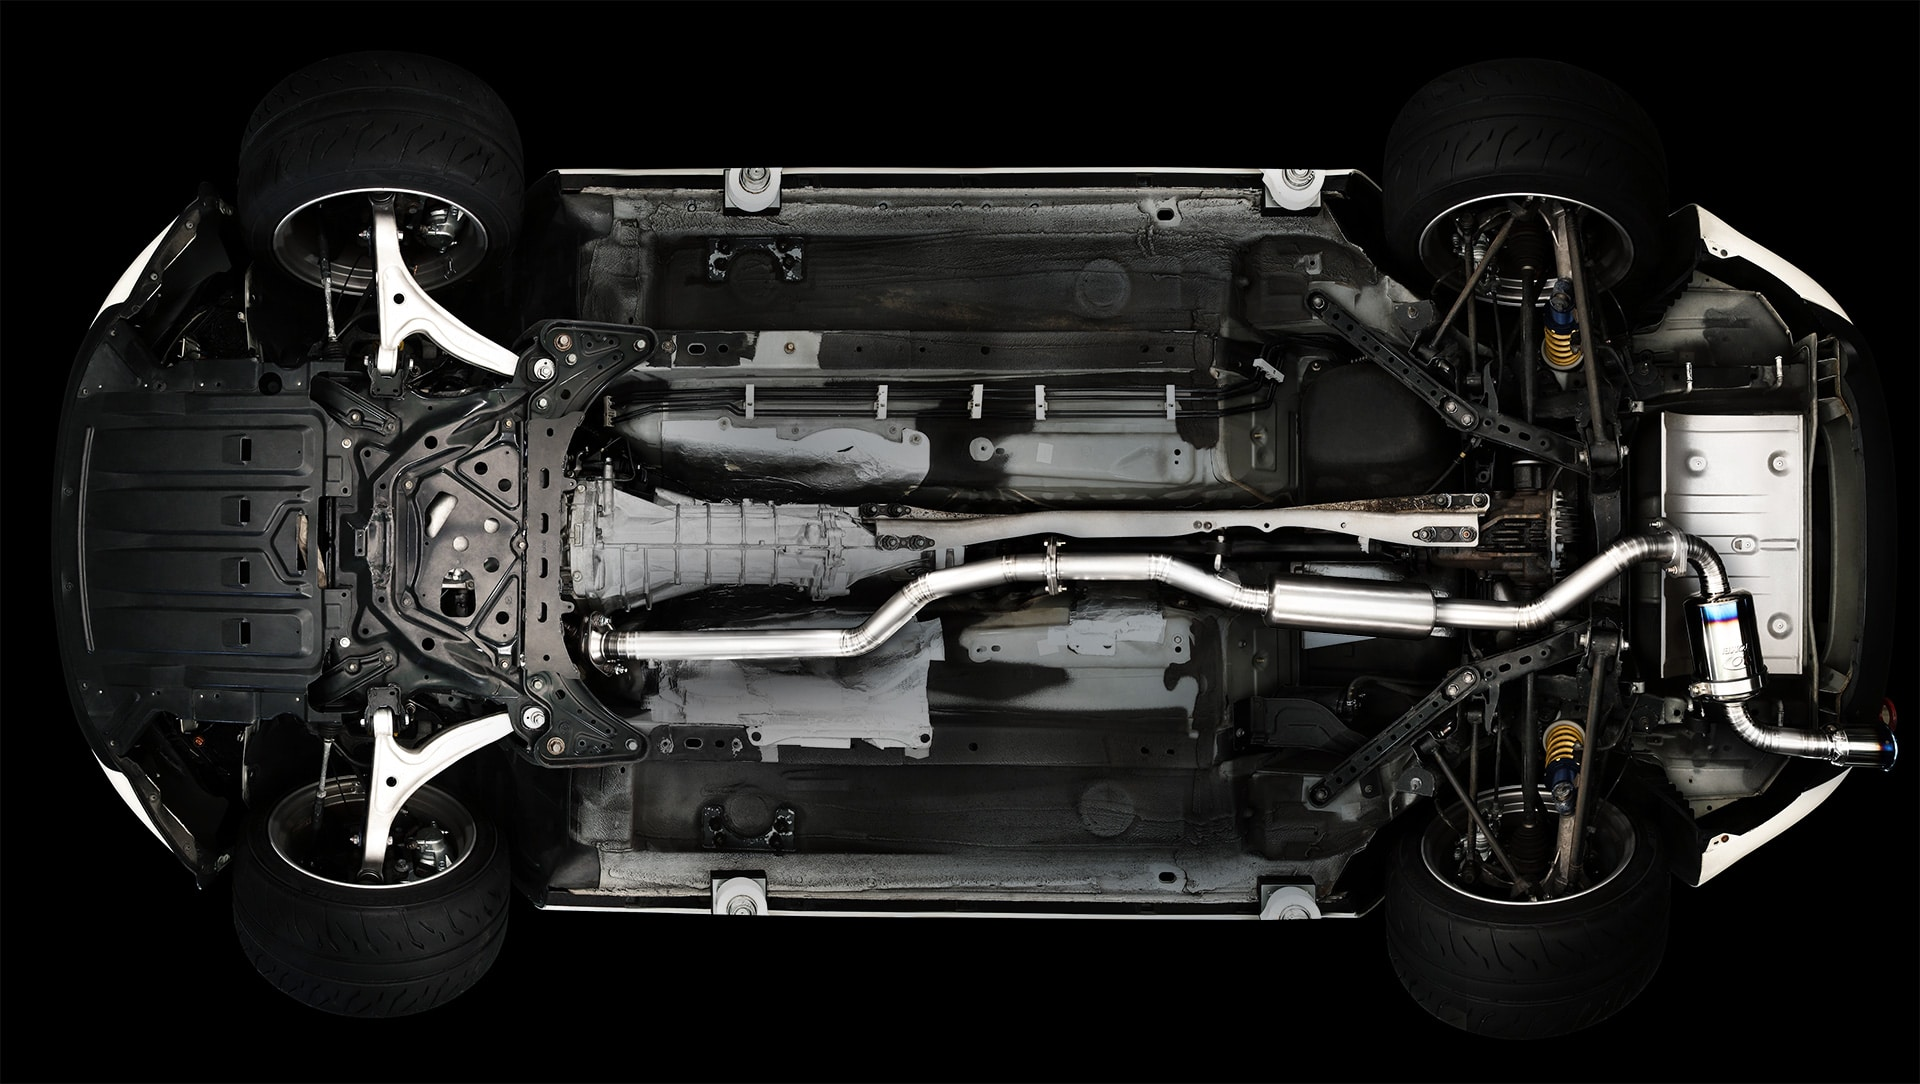 best miata exhausts from cheap to